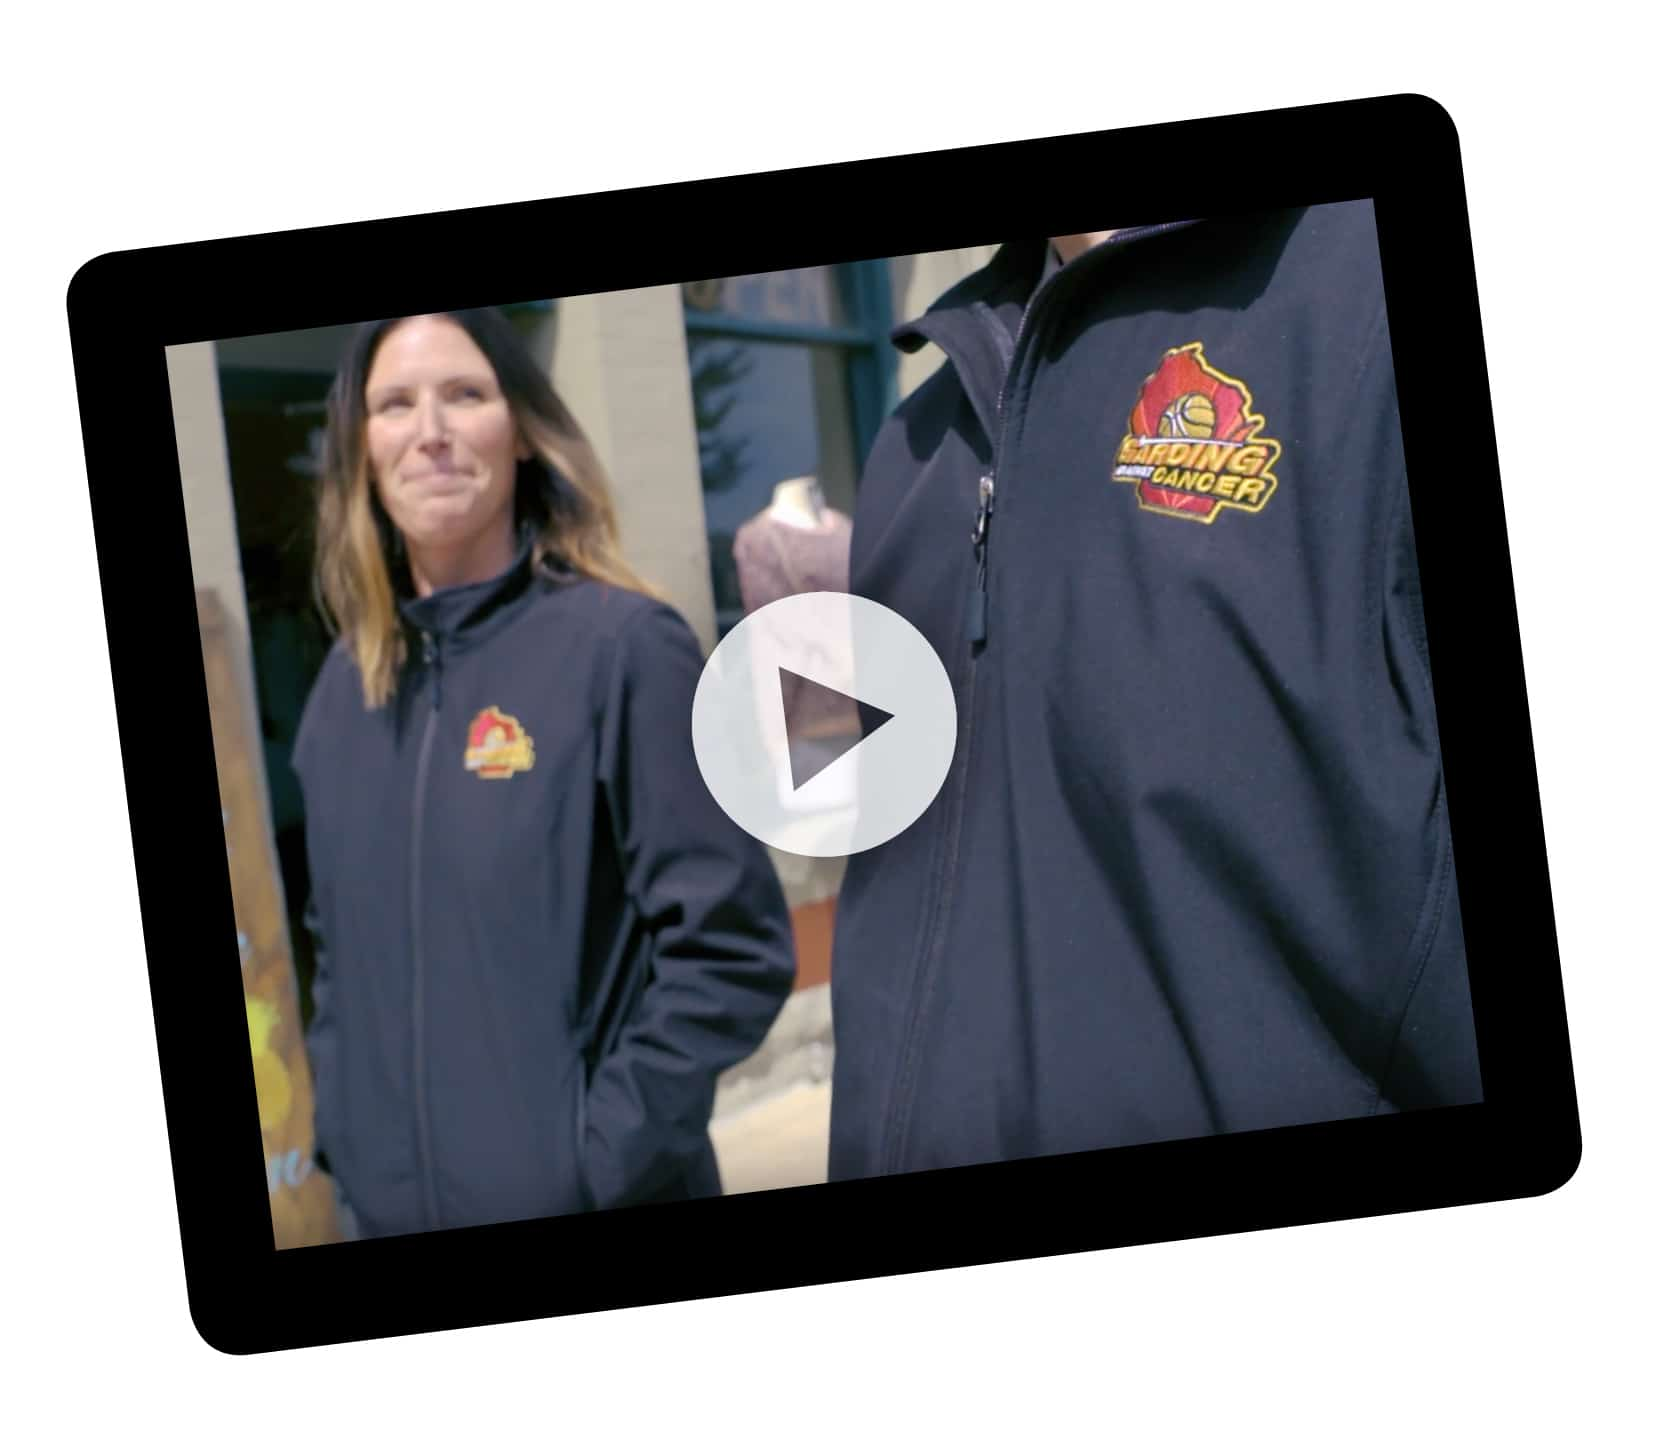 tablet showing video for how Garding Against Cancer used promotional products as a thank-you gift for donors - click to watch video